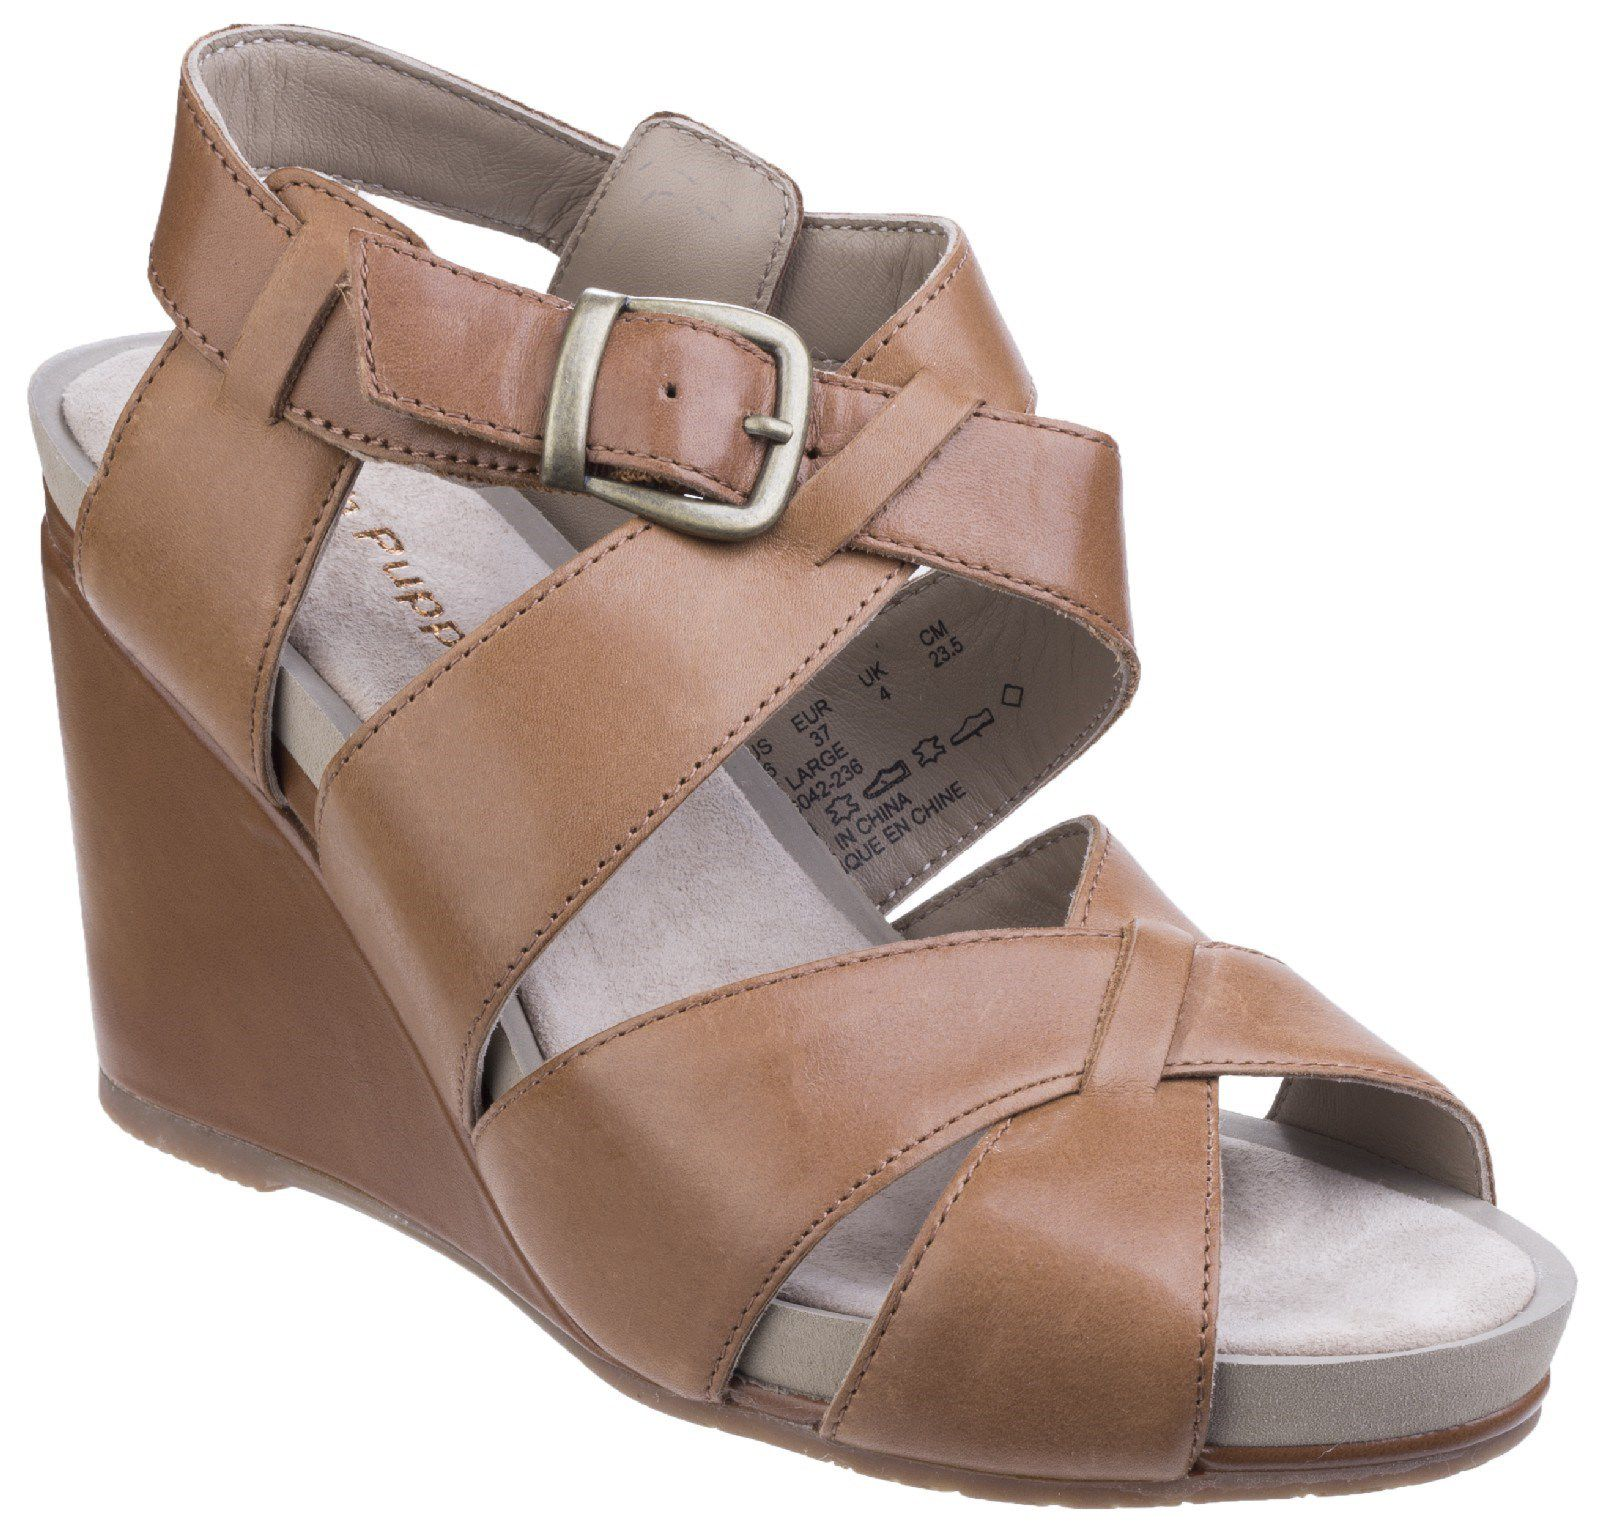 Hush Puppies Fintan montie buckle sandals Tan